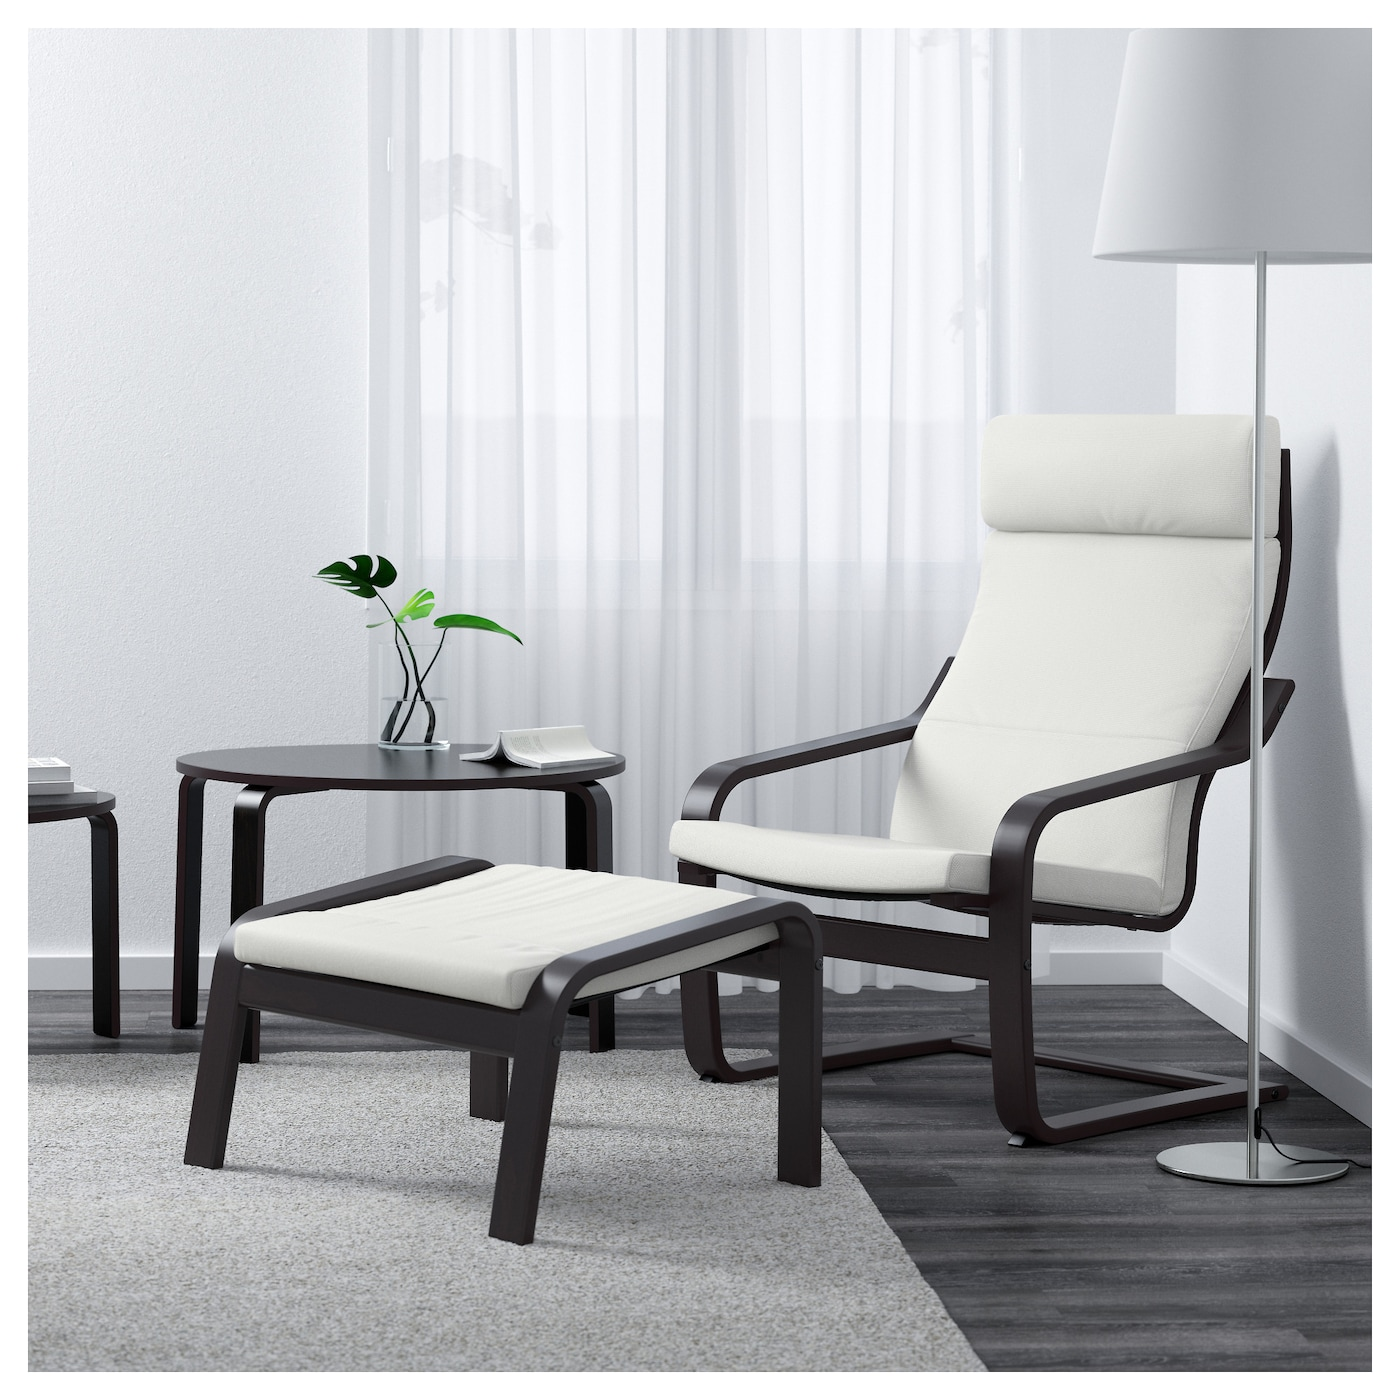 po ng fauteuil brun noir finnsta blanc ikea. Black Bedroom Furniture Sets. Home Design Ideas